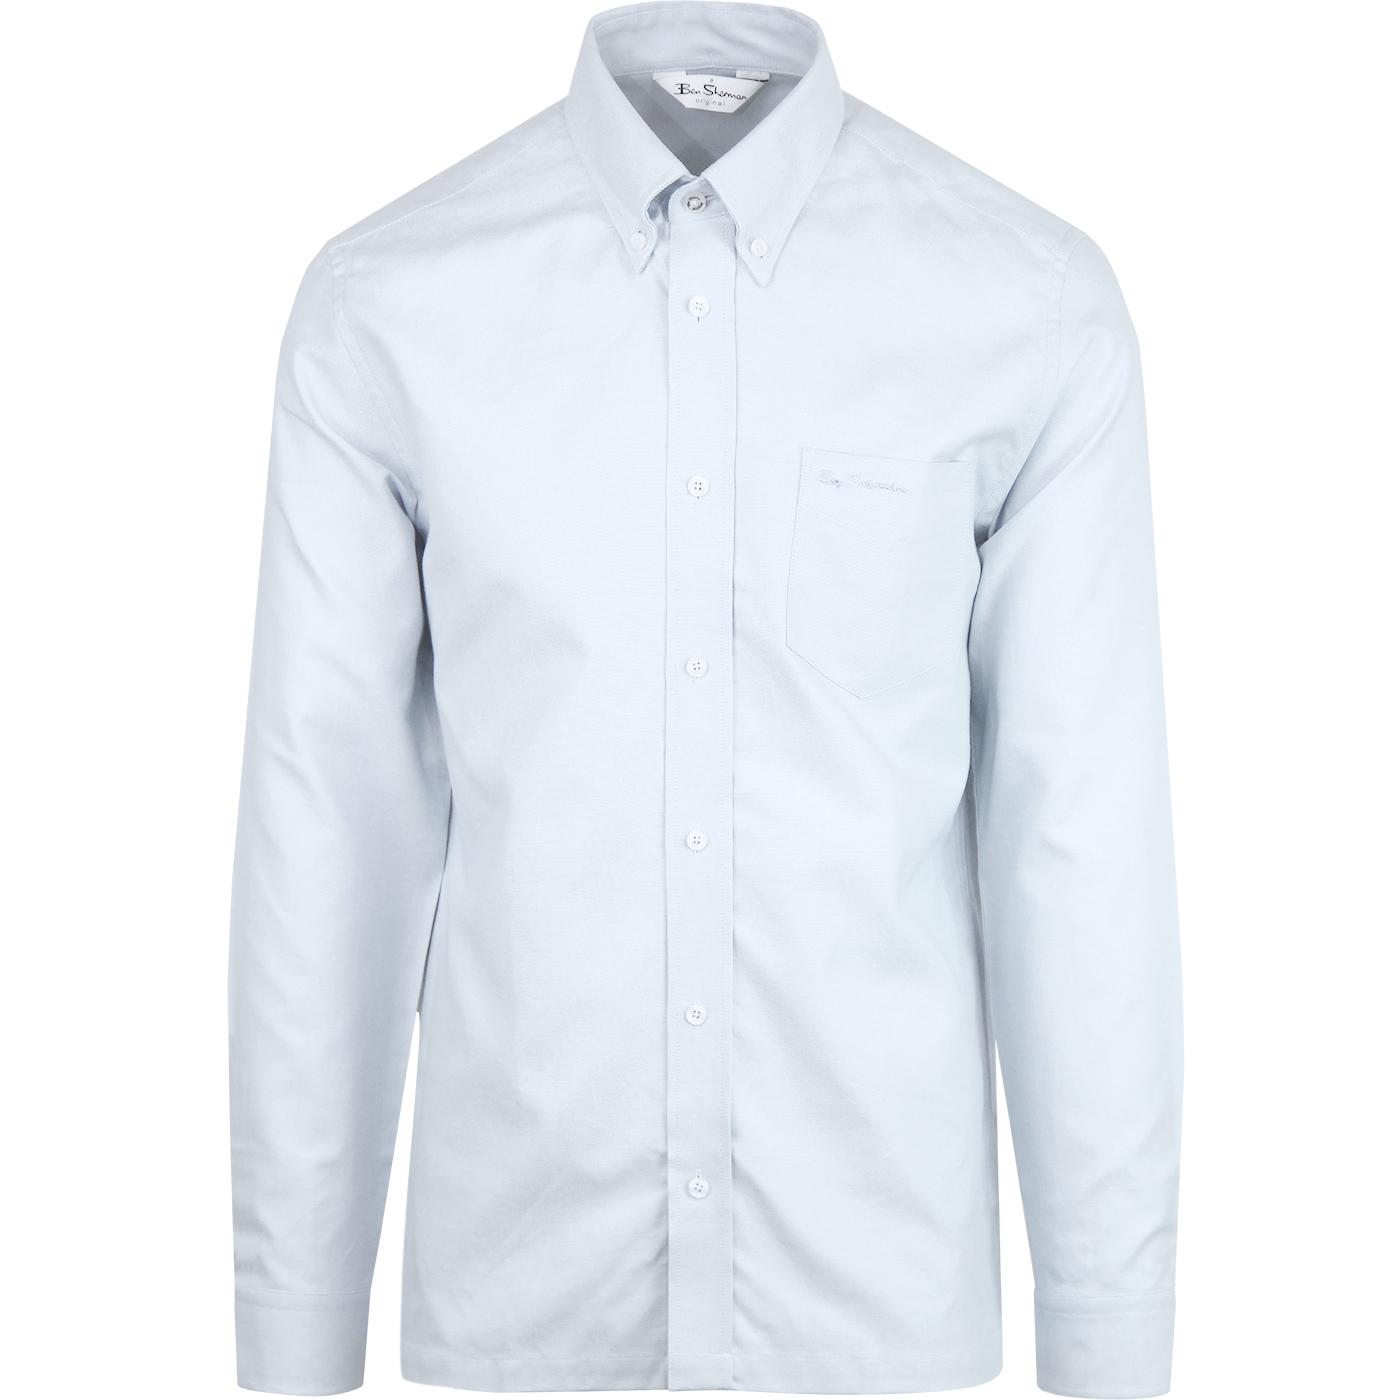 BEN SHERMAN Archive Benny Mod Oxford Shirt (Mint)